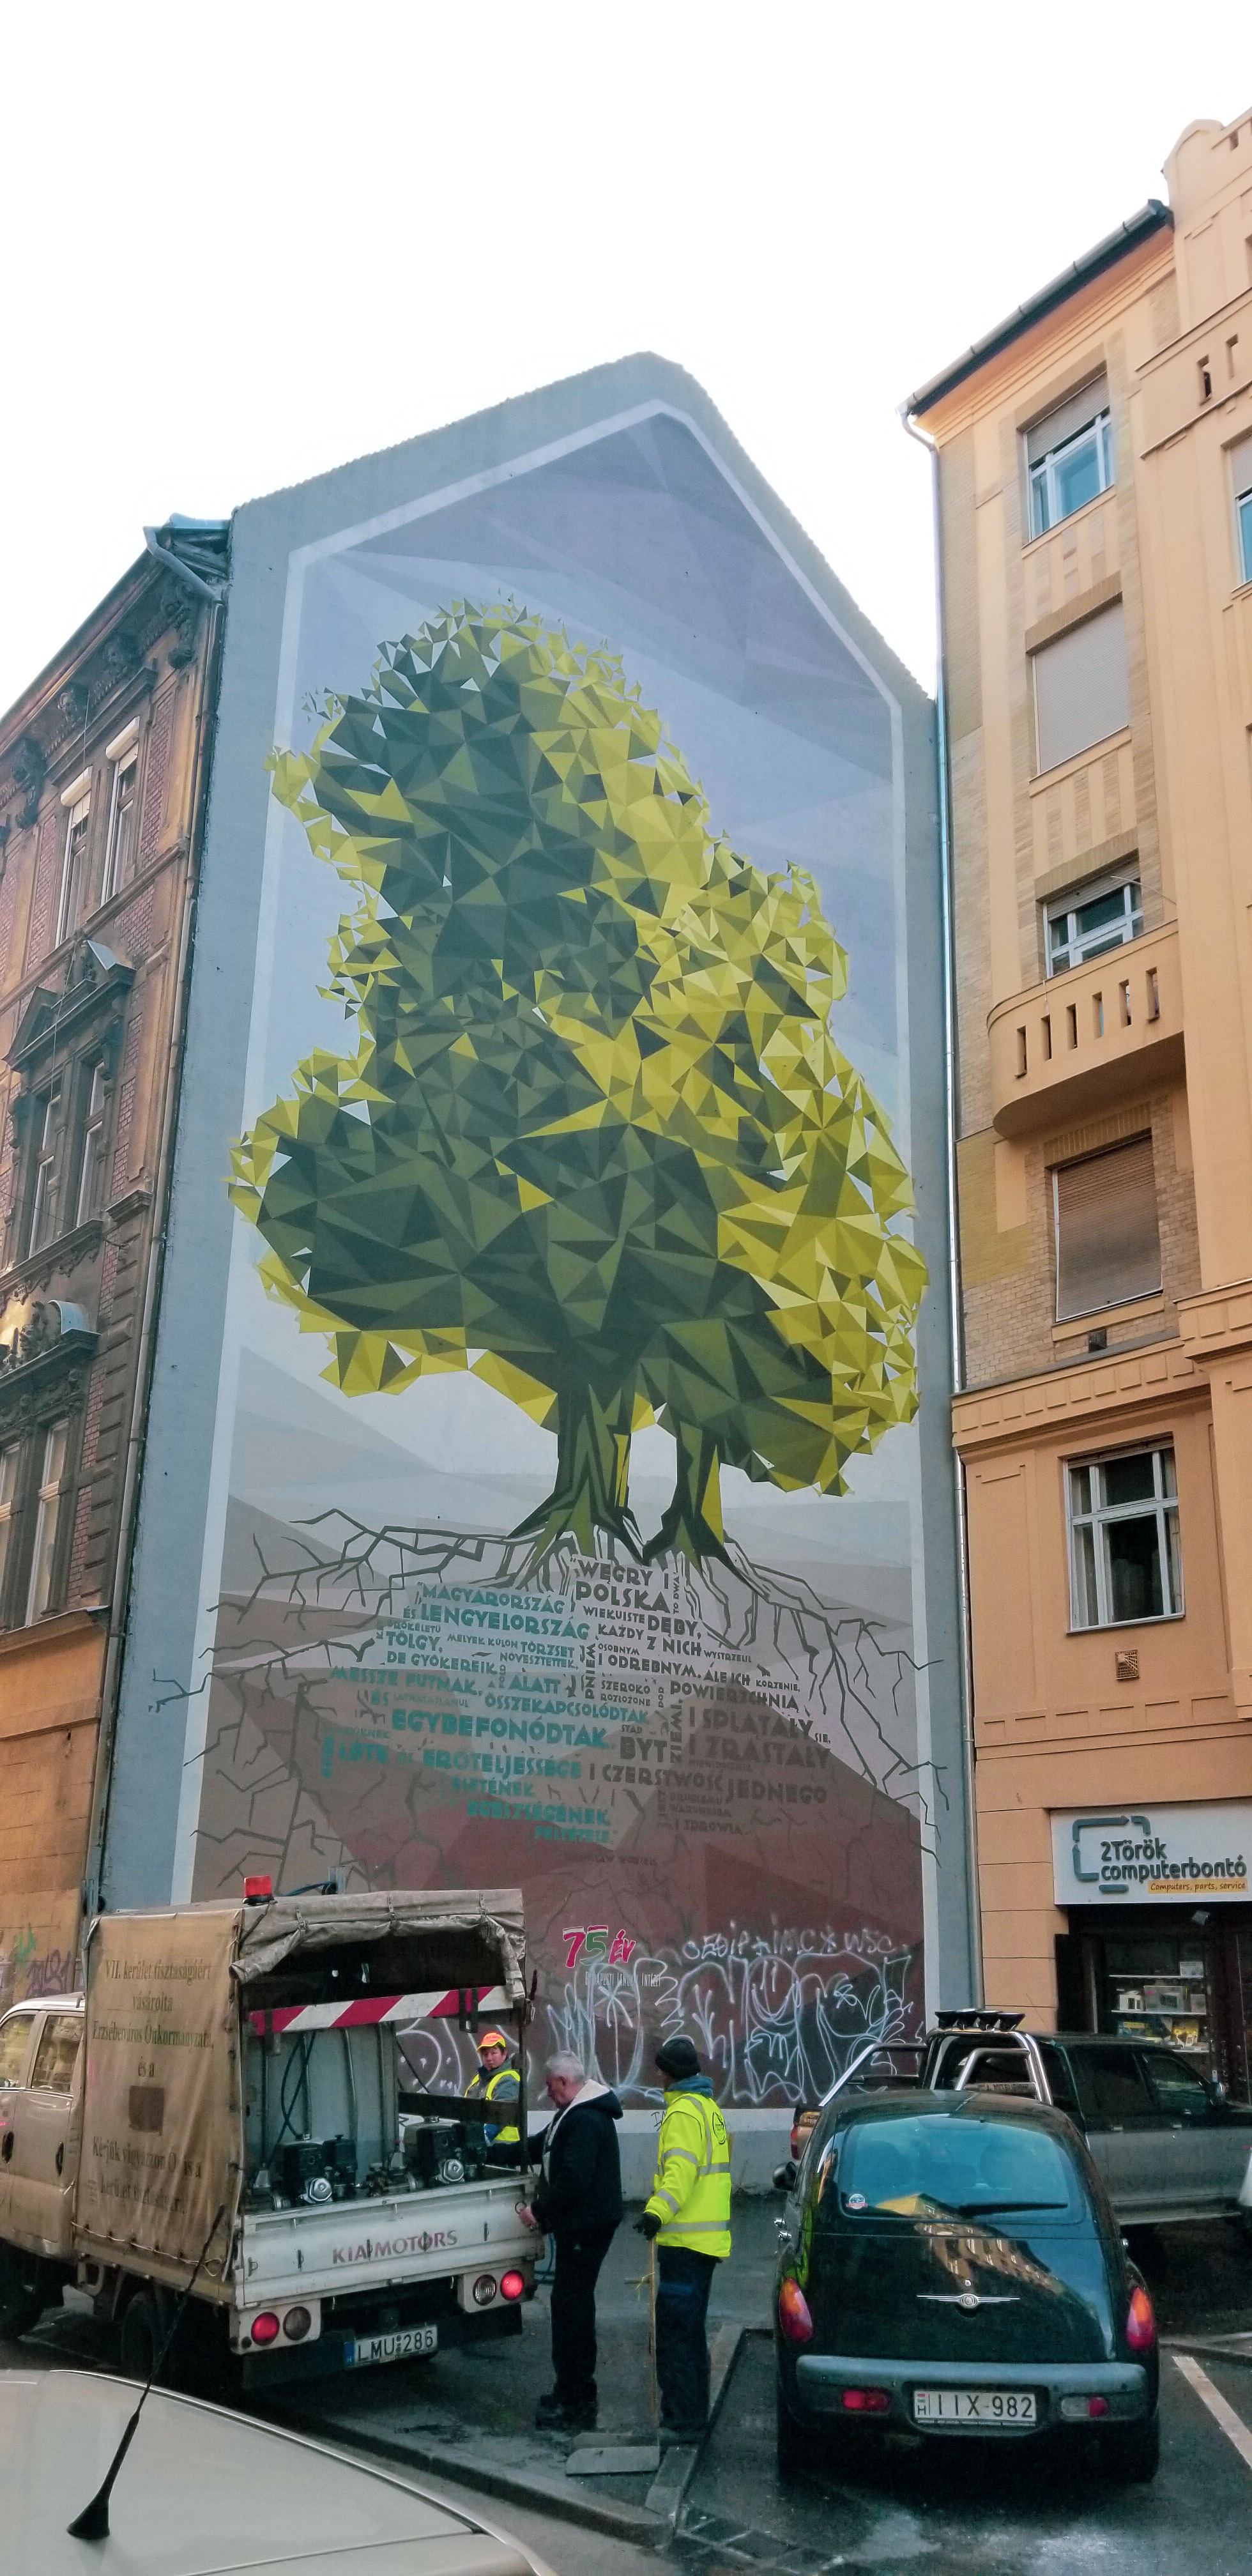 """A creation by the group  Neopaint , this mural shows the common ties between Polish and Hungarian cultures. The words read: """"Hungary and Poland are two forever-living oaks, which have their own trunks, but their roots are far beneath the earth: they have joined and invisibly merged. So the existence and strength of each one is tied to life and health of the other."""" — Stanislaw Worcell"""